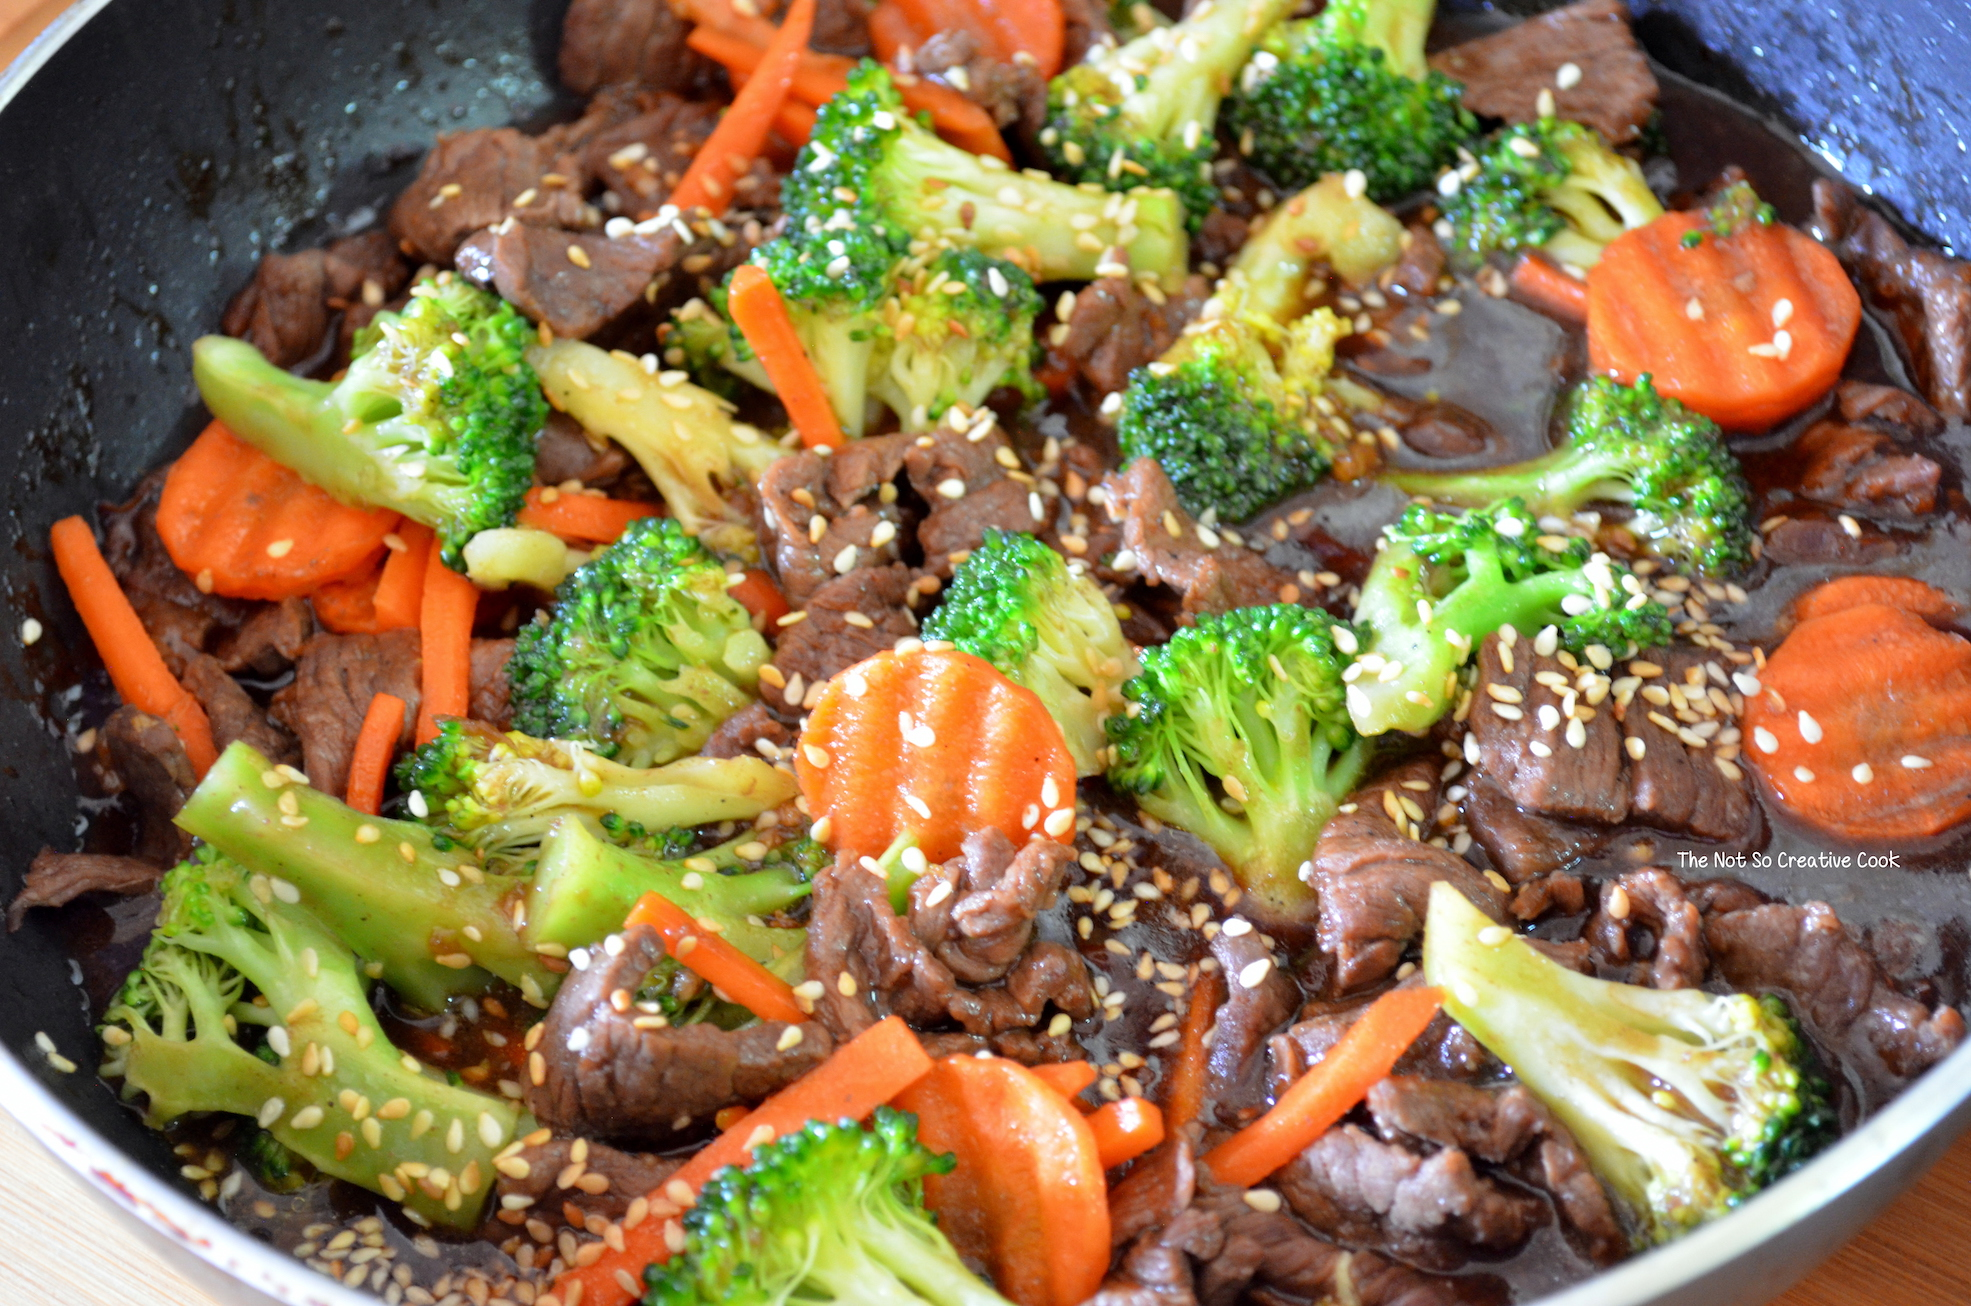 Saucy Beef With Broccoli And Carrots The Not So Creative Cook